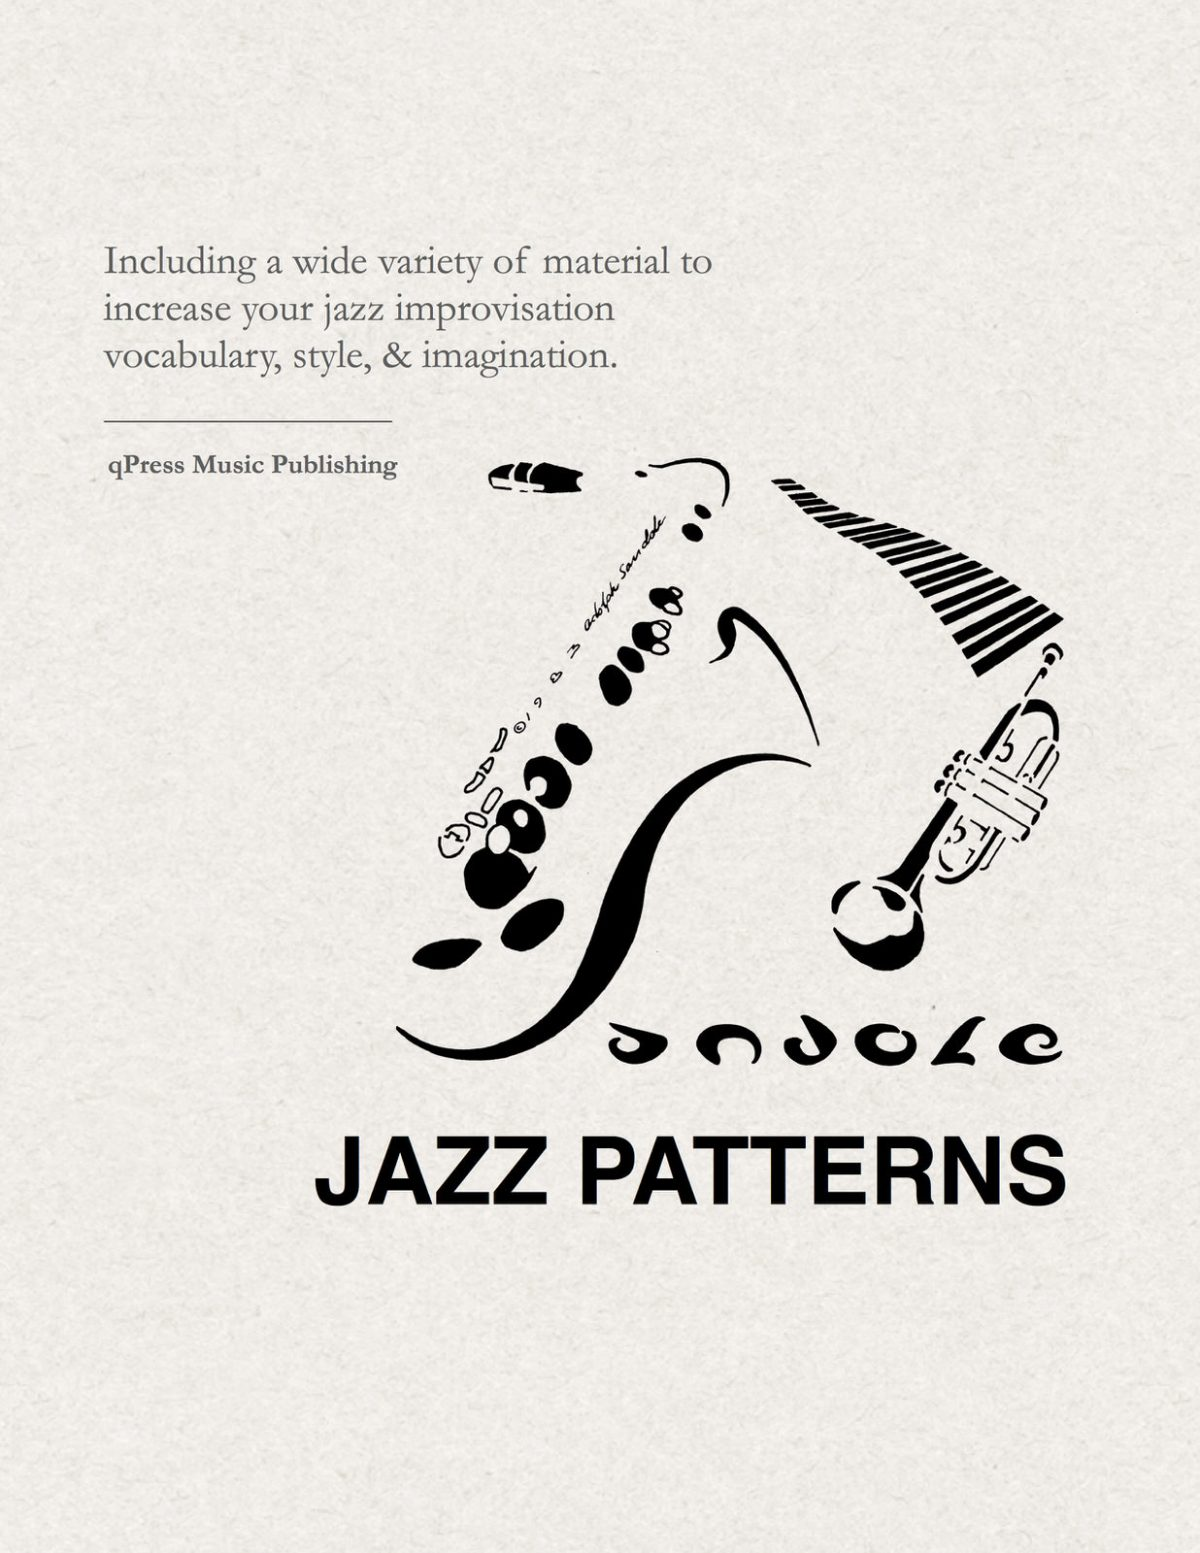 Sandole, Jazz Patterns